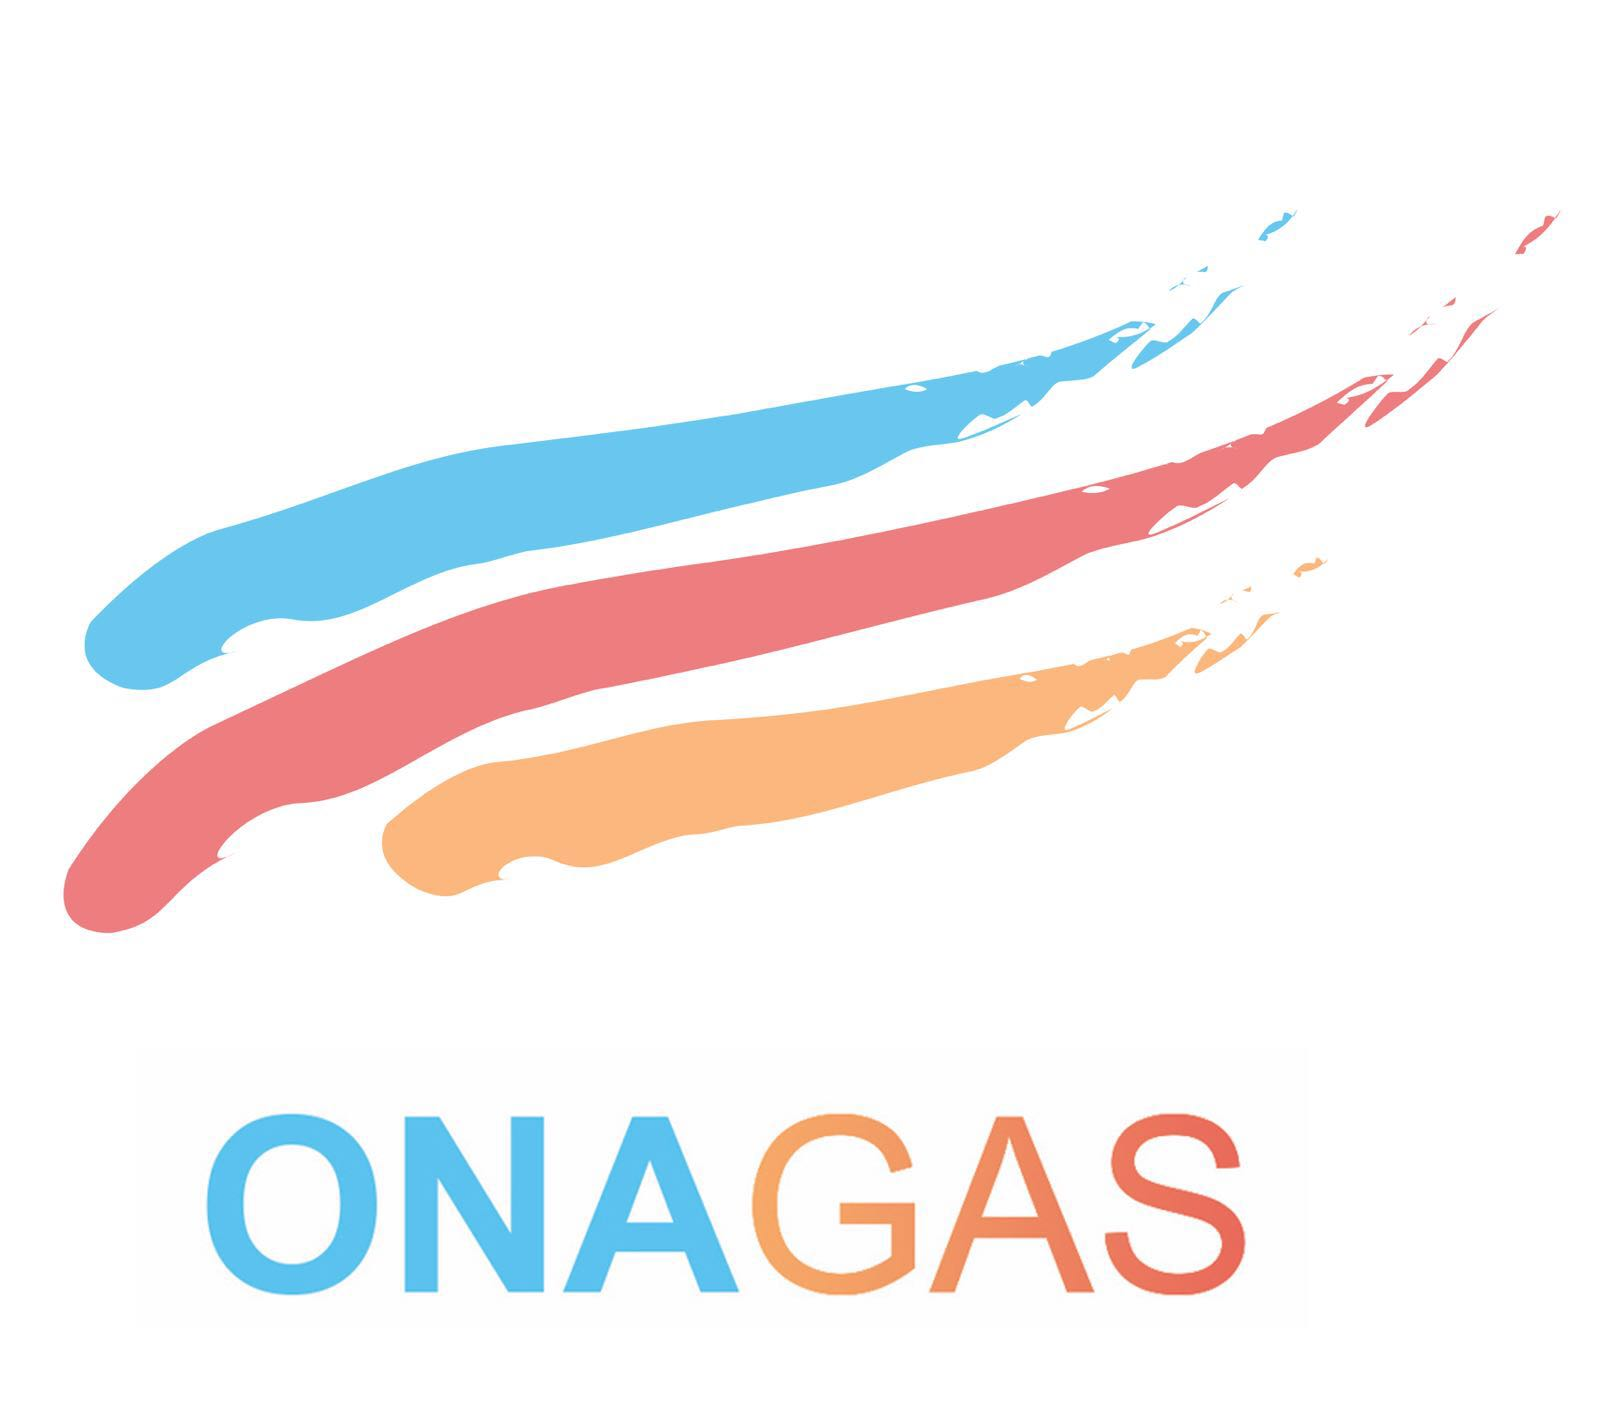 Onagas Marketer And Services